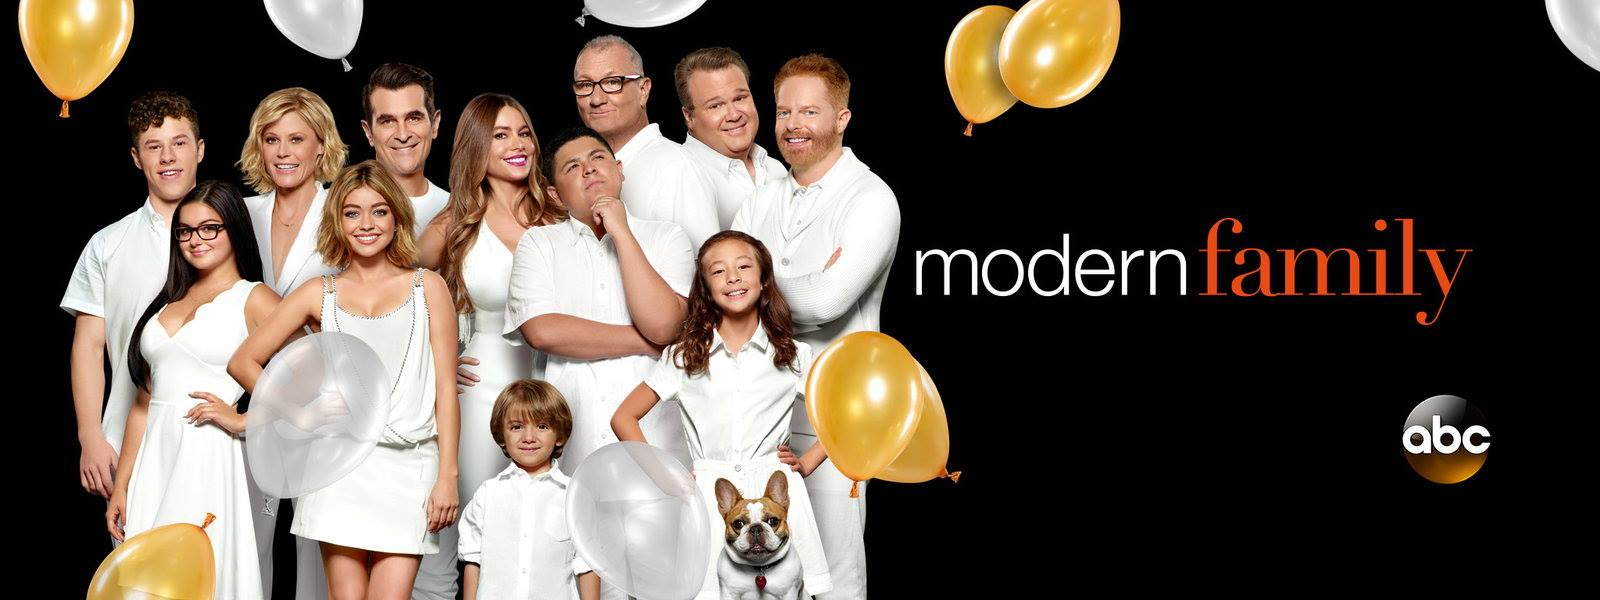 modern-family-on-abc